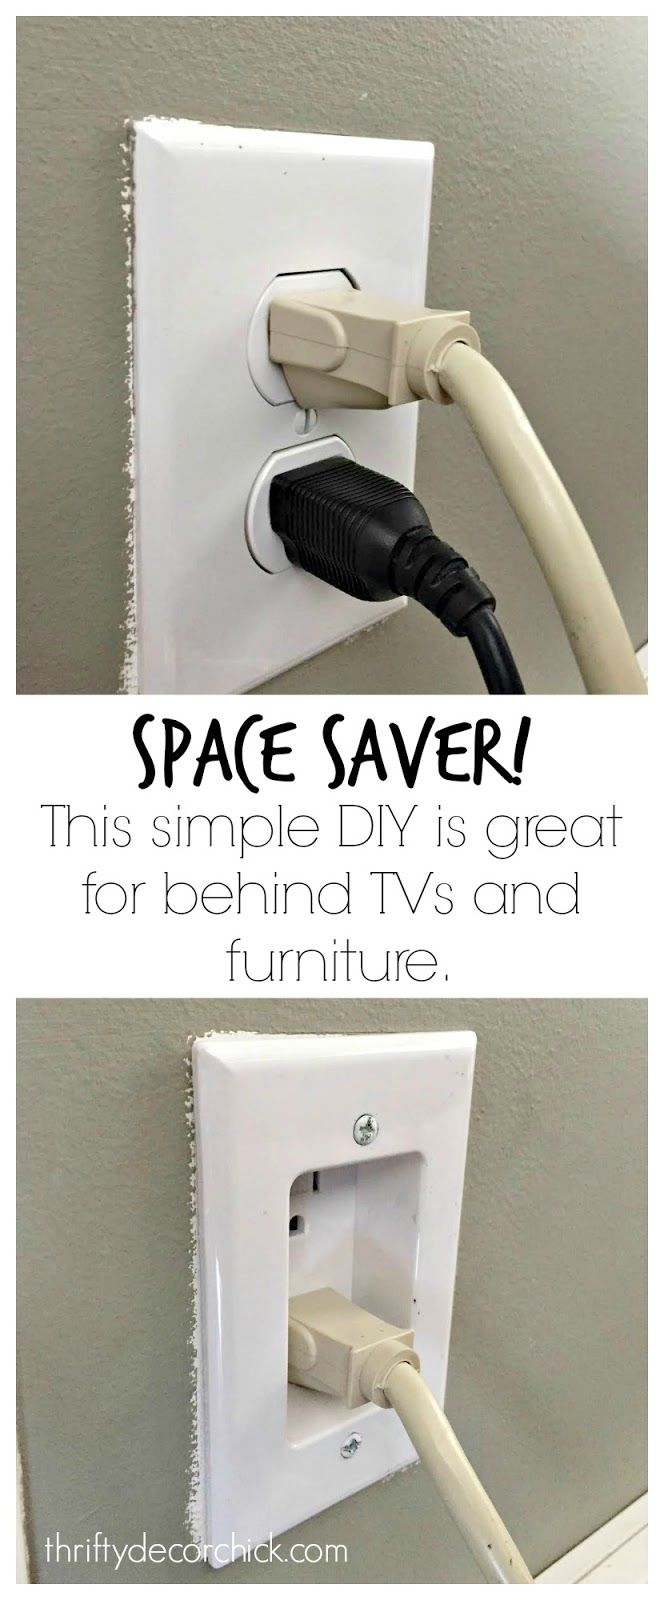 Gaining a Few Extra Inches | Pinterest | Space saver, Simple diy and ...